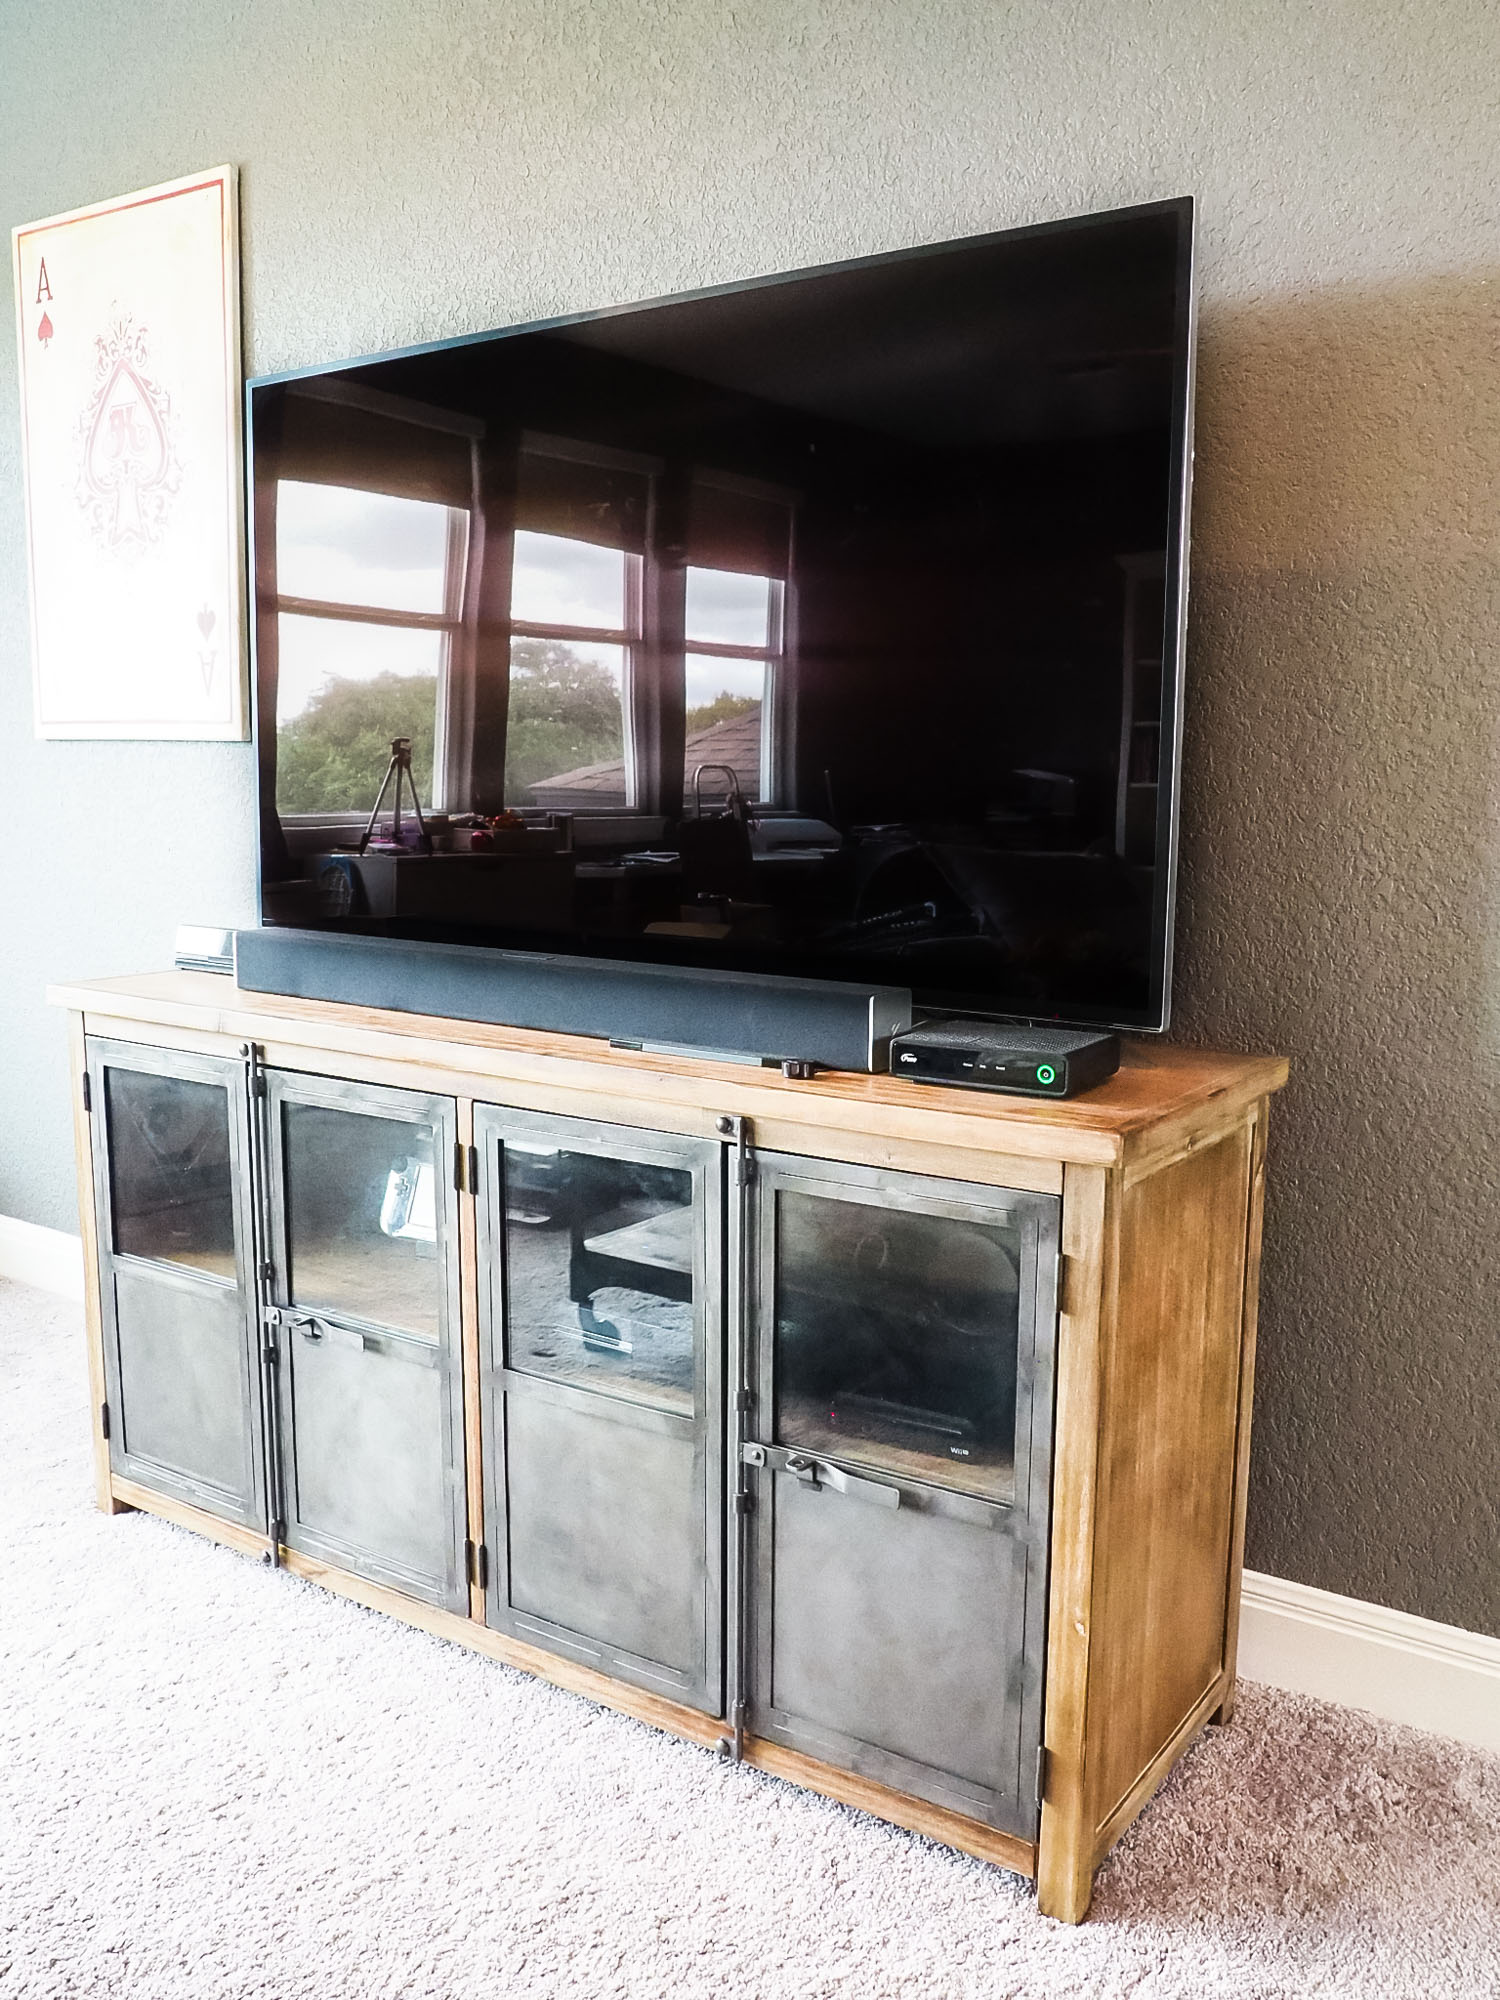 This media unit has a unique latch closure that is industrial and adds character. I love it! (It's the  Langley Storage Cabinet  and it's 40% off right now! Use code FURNDEAL at checkout.)